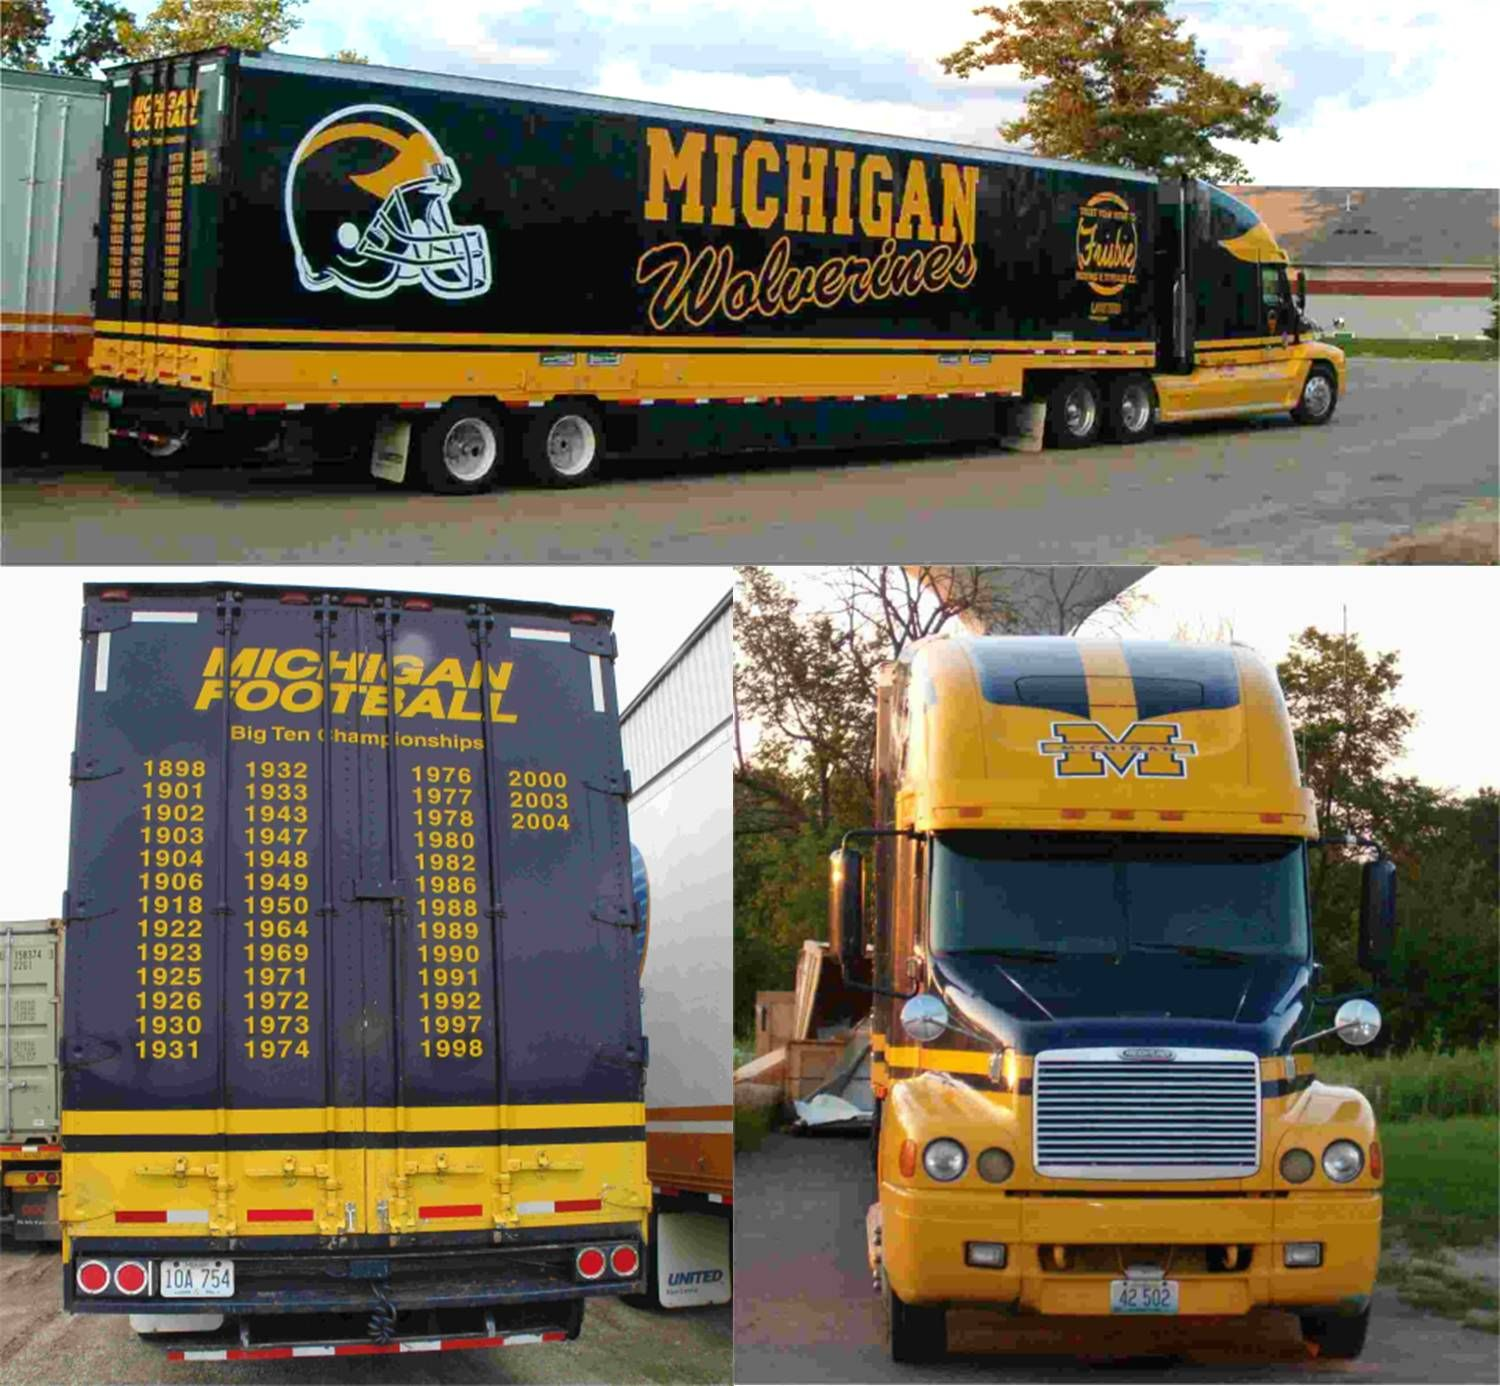 University of Michigan Wolverines equipment transporter for away